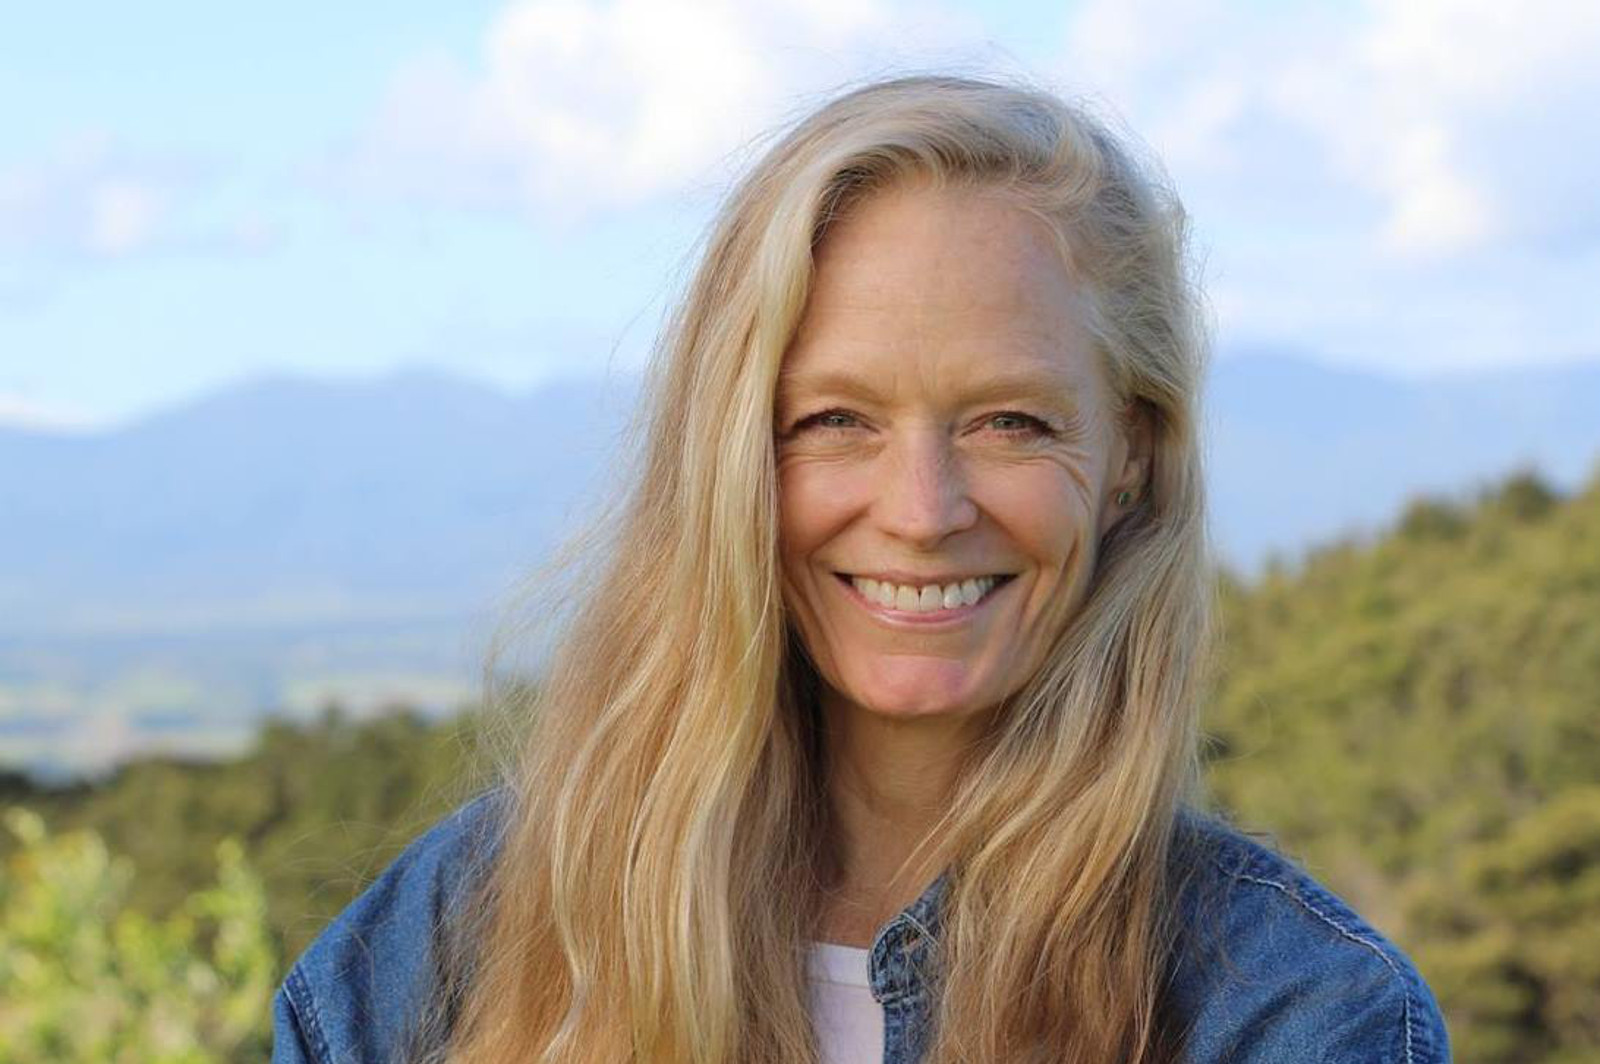 Suzy Cameron Dishes it All On Opening Vegan Schools, Launching a Food Company, Her New Book, and More